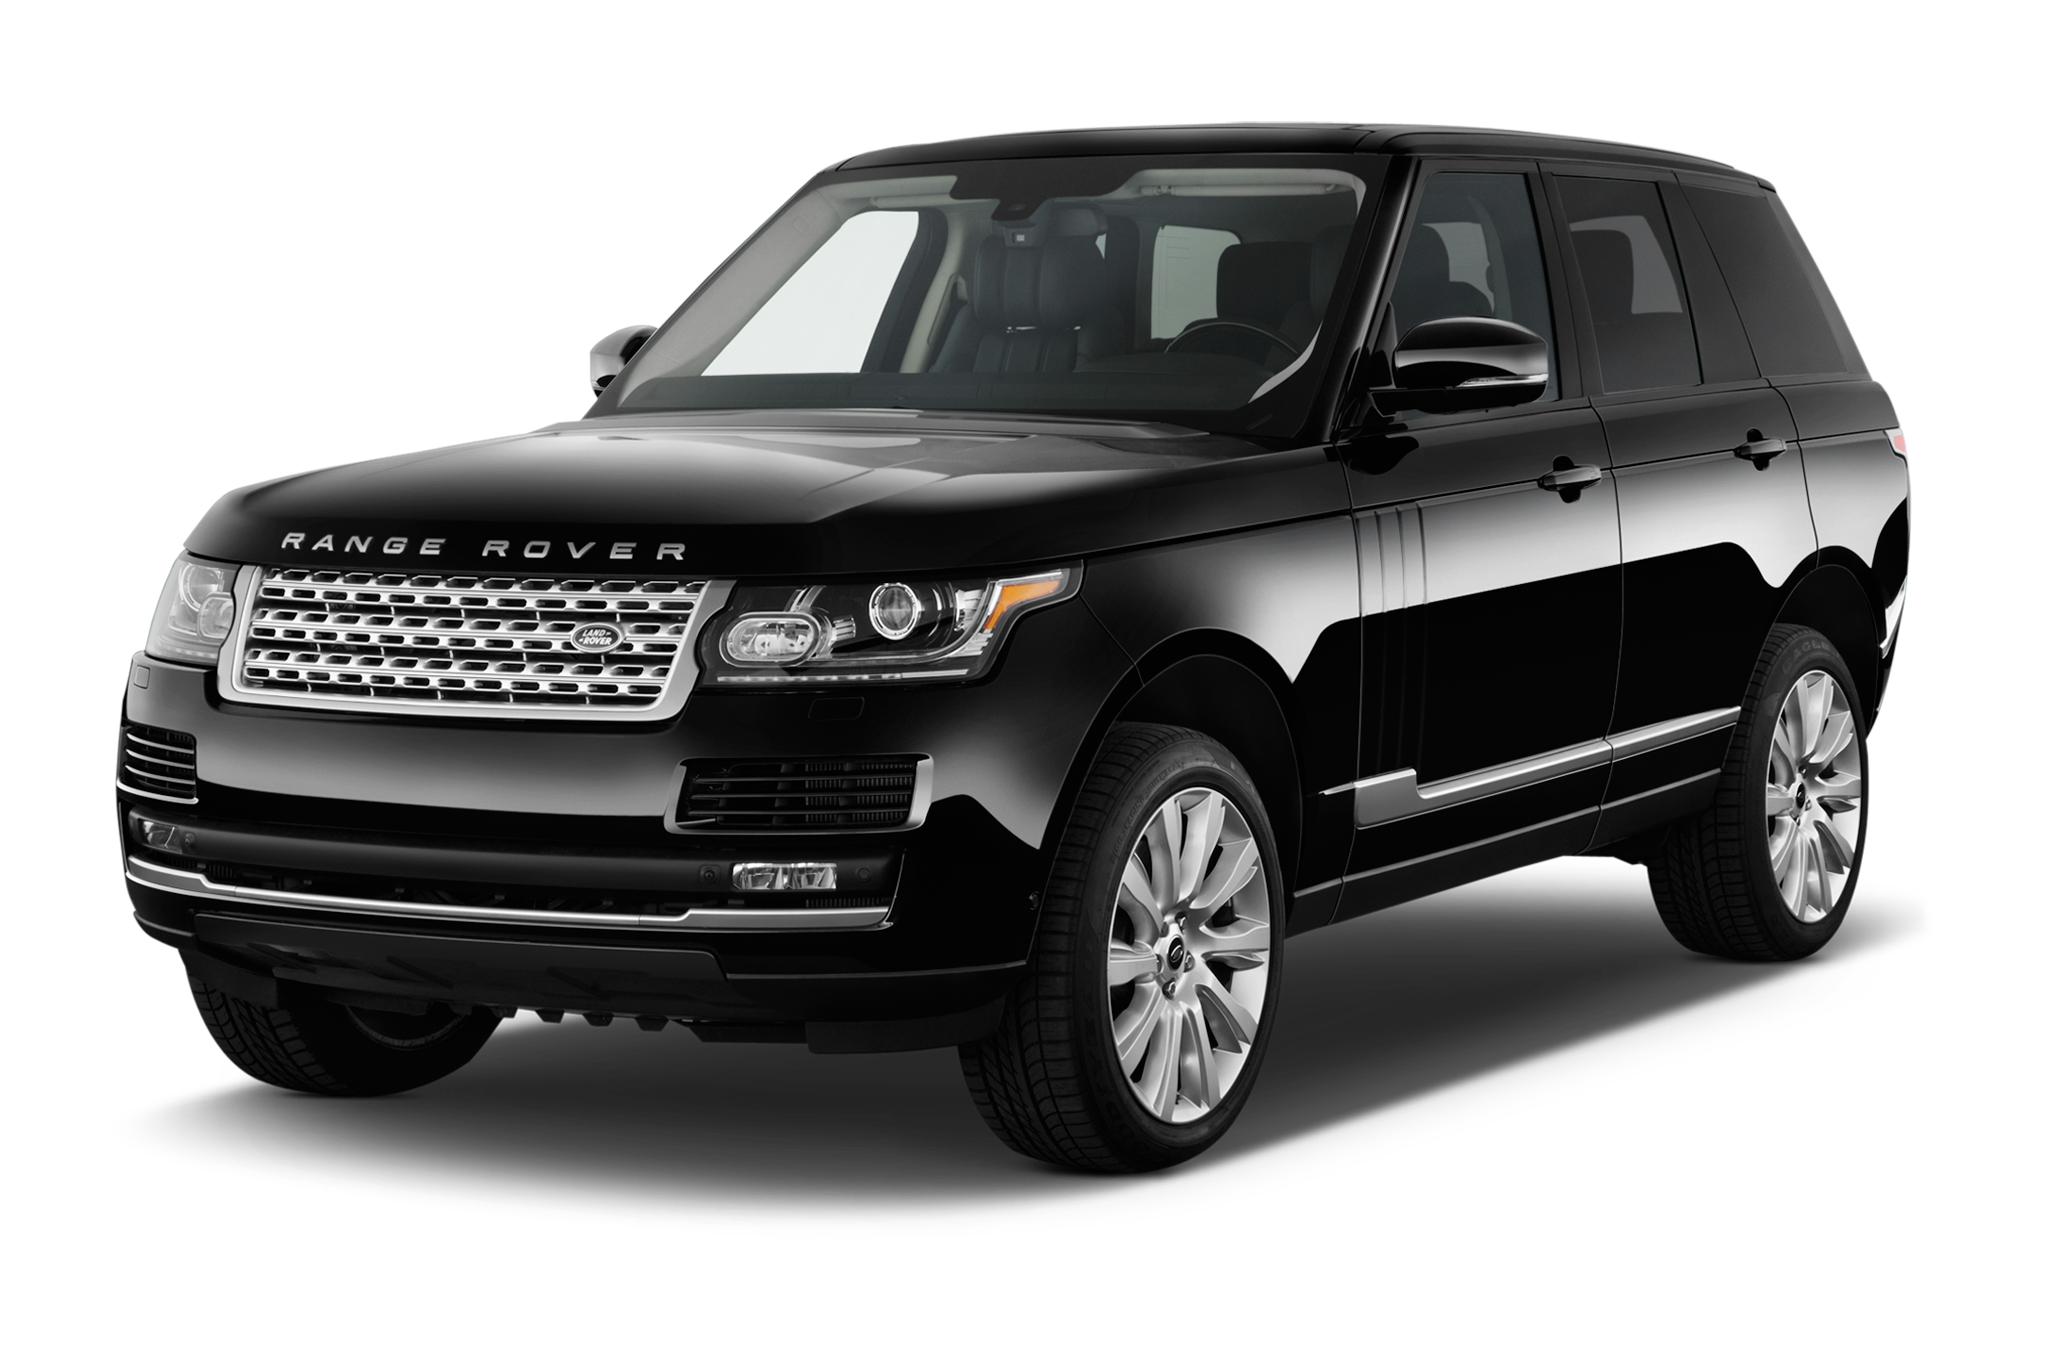 2014 Land Rover Range Sport Driven Simple Engine Diagram Images Pictures Becuo